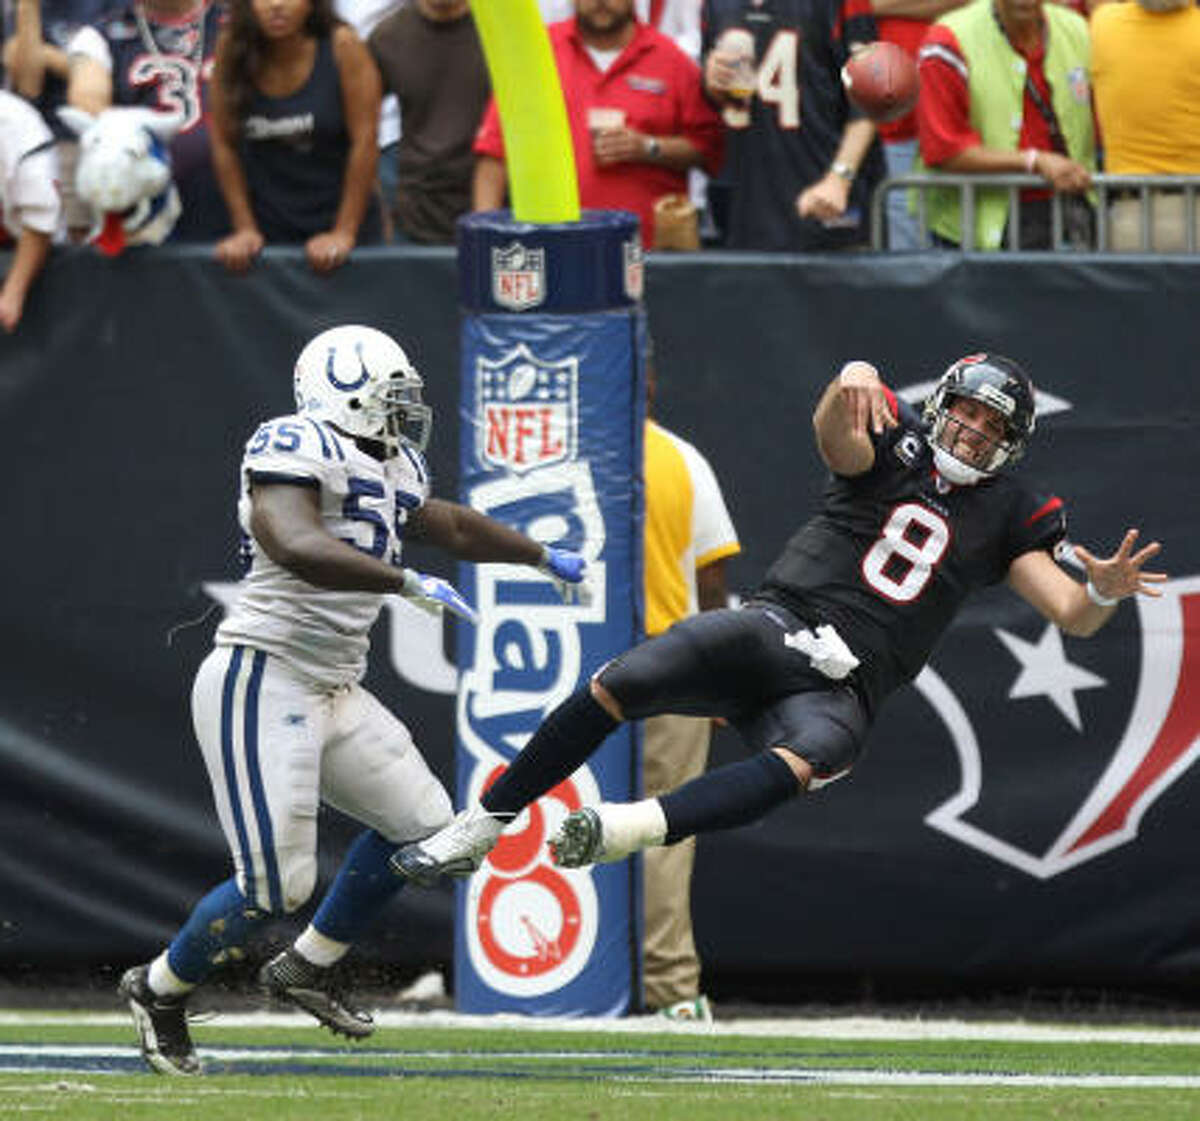 FALLING: Quarterback Matt Schaub Schaub committed three turnovers in the second half, including an interception that was returned by Clint Session for a touchdown in the fourth quarter.